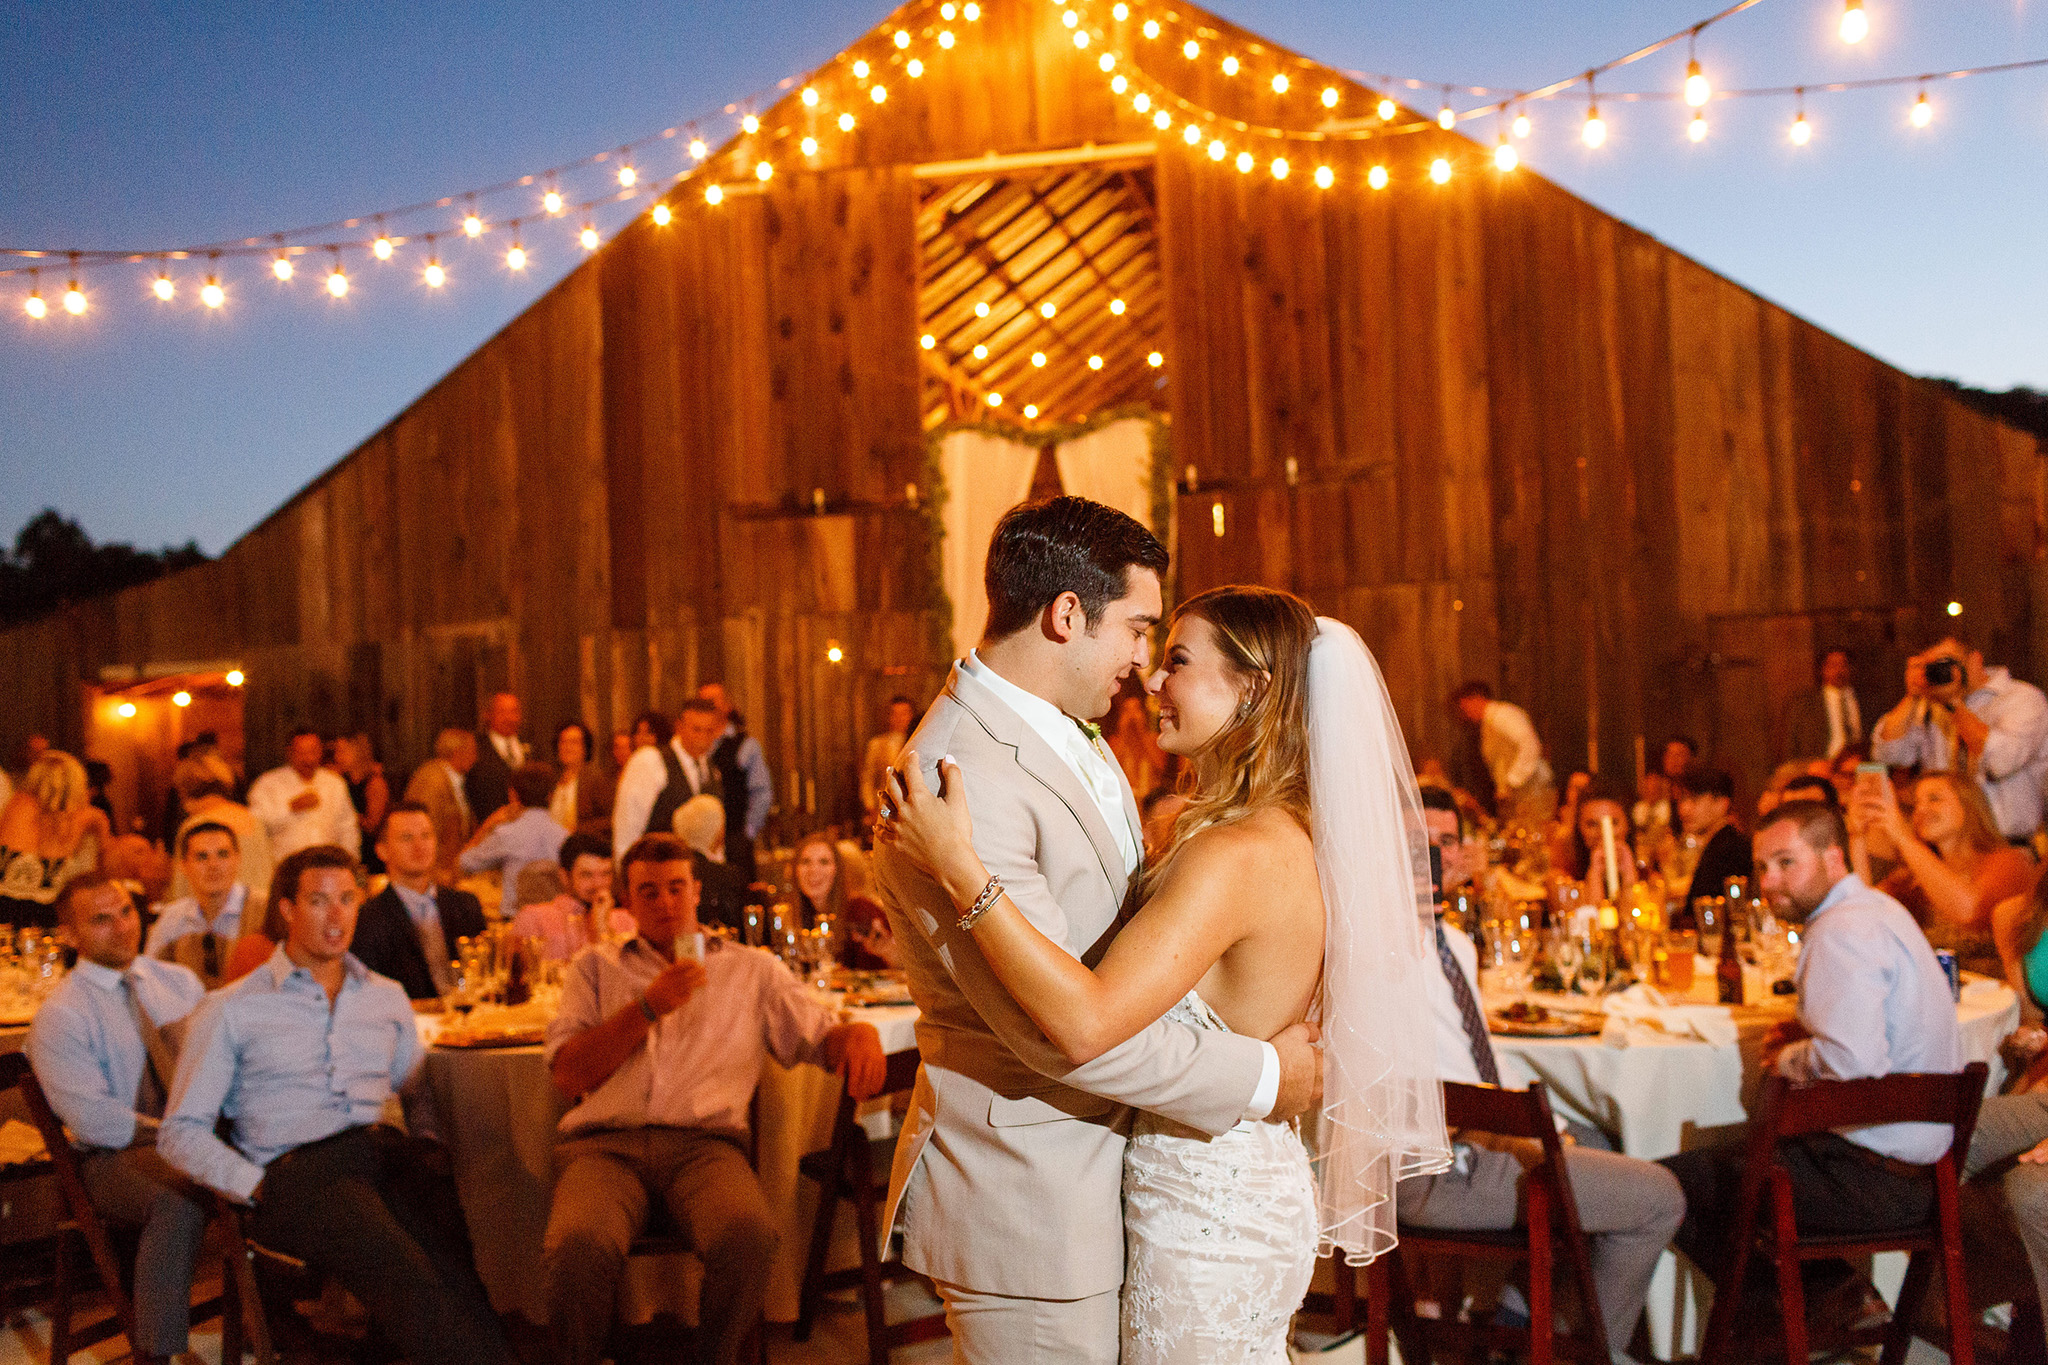 Cute bride and groom share their first dance under the barn lights at Higuera Ranch in San Luis Obispo, CA